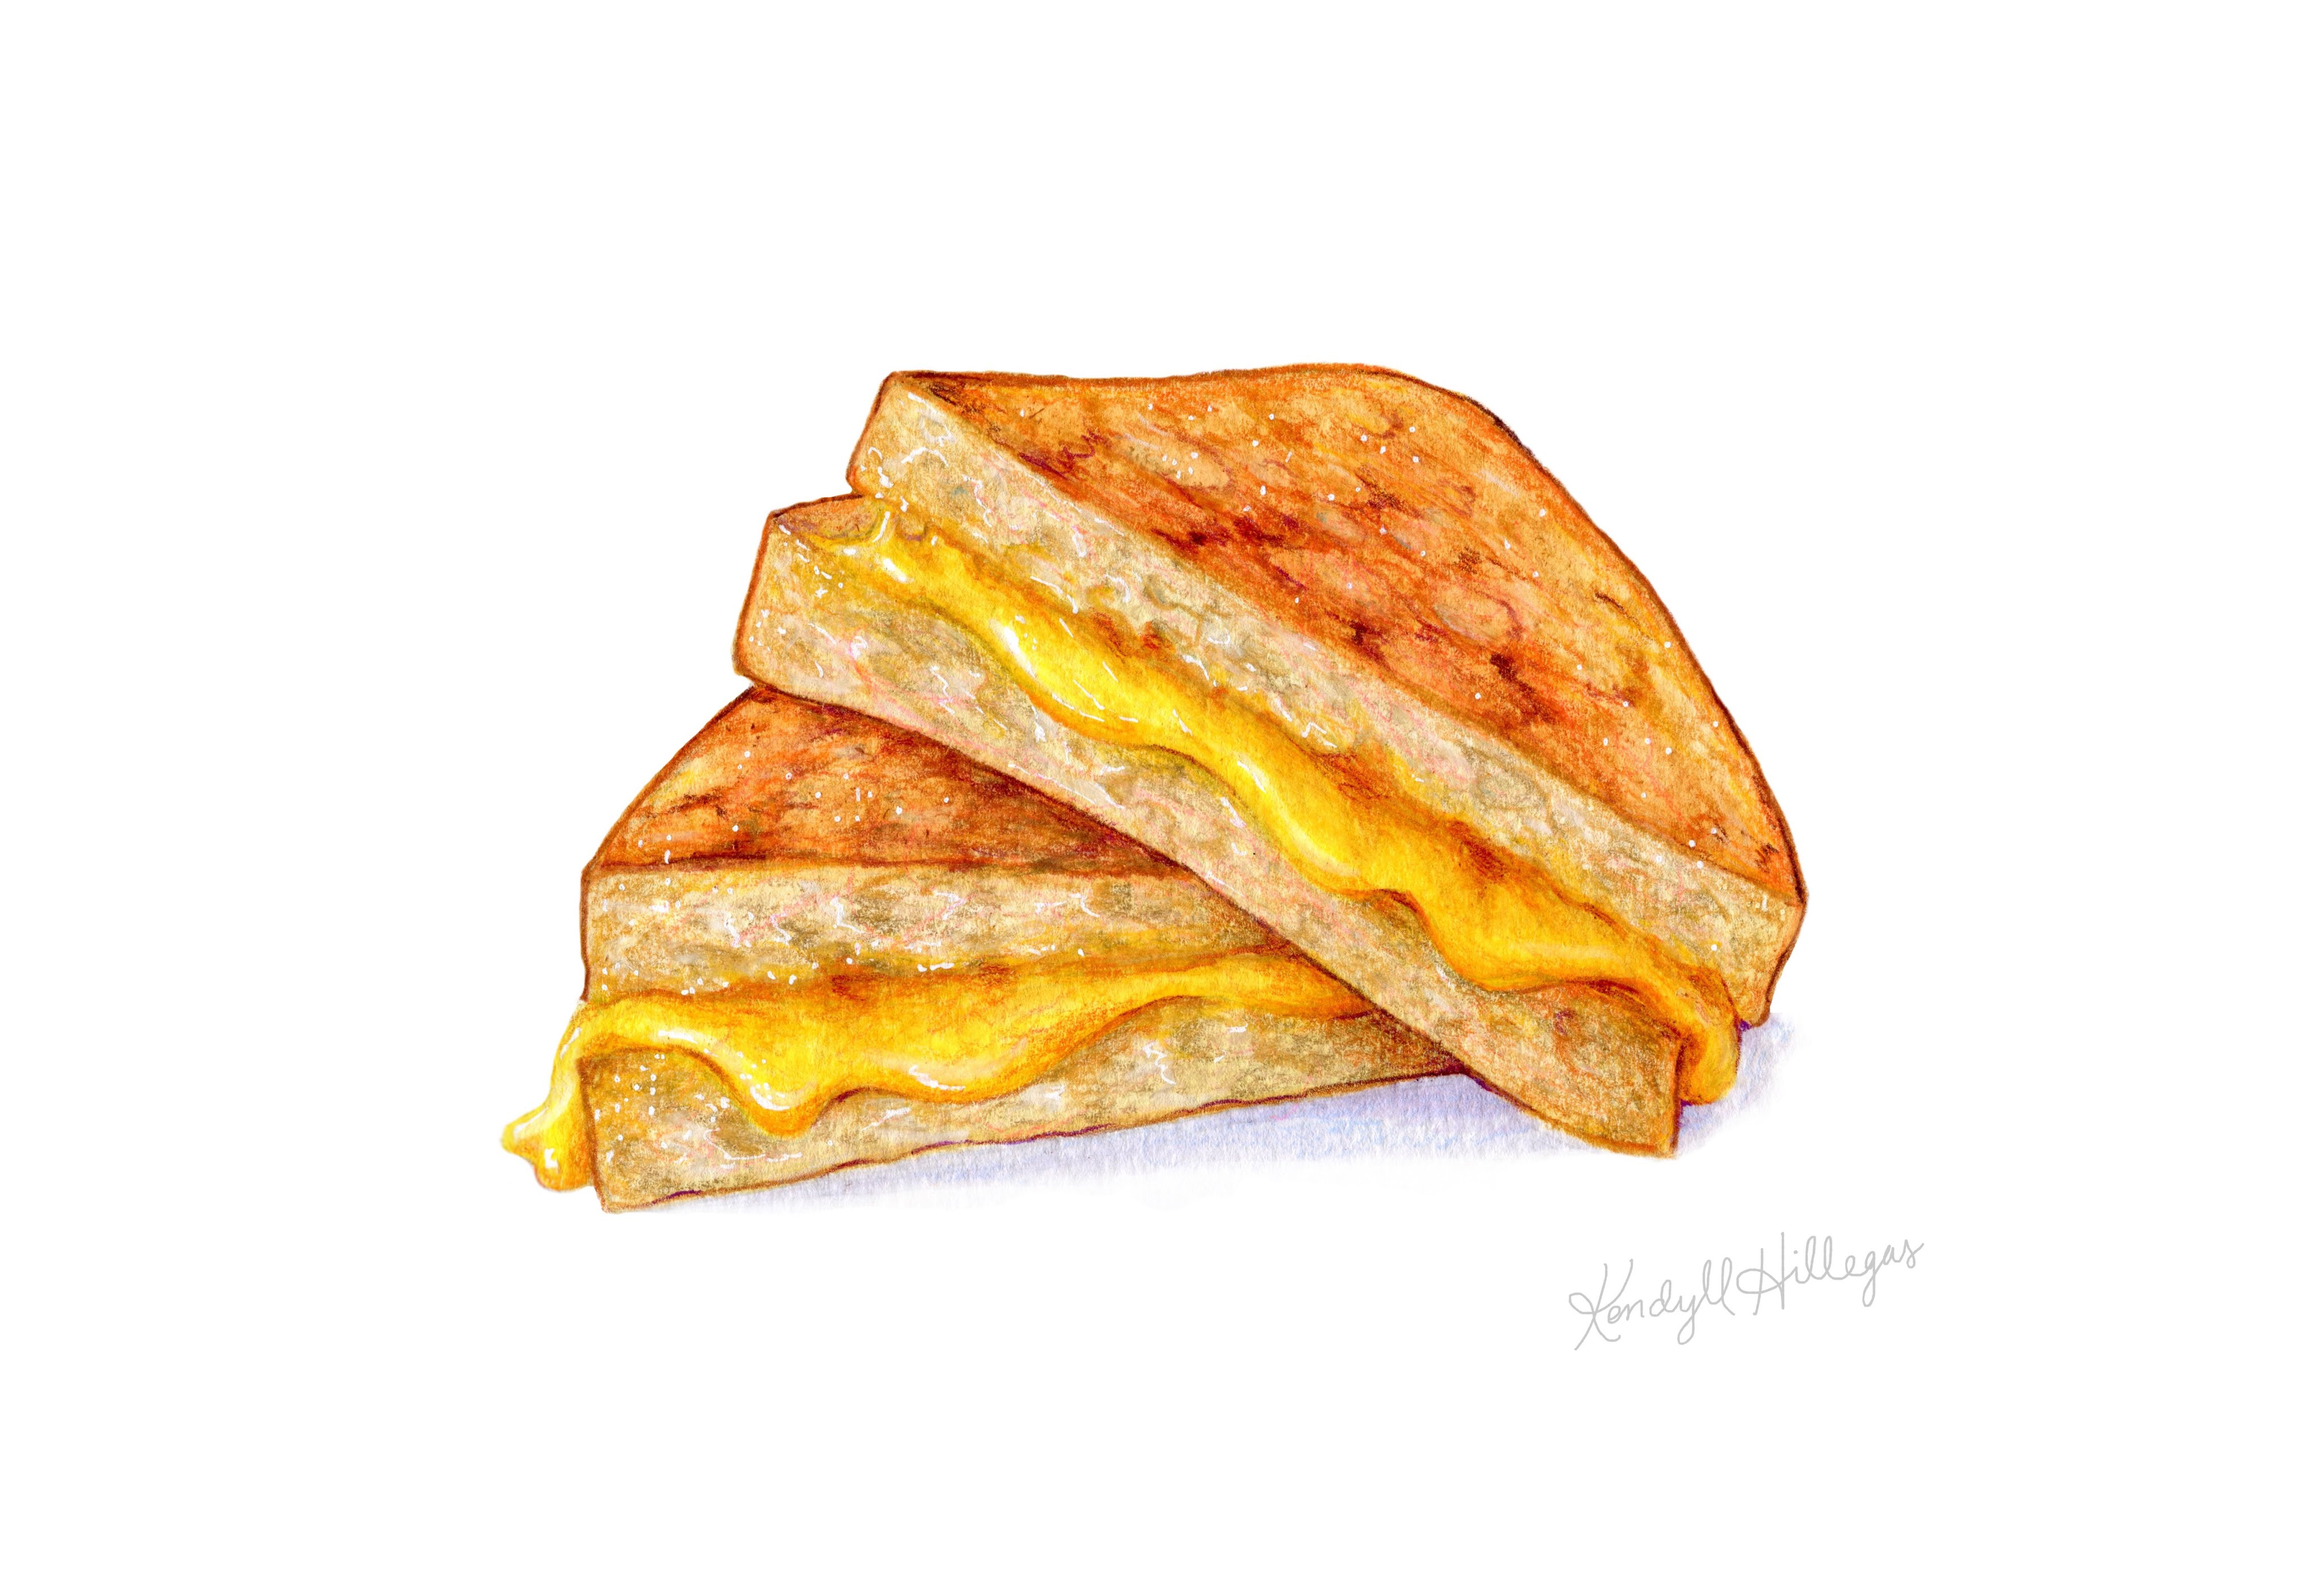 4096x2825 Food Illustration Speedpainting Of A Grilled Cheese